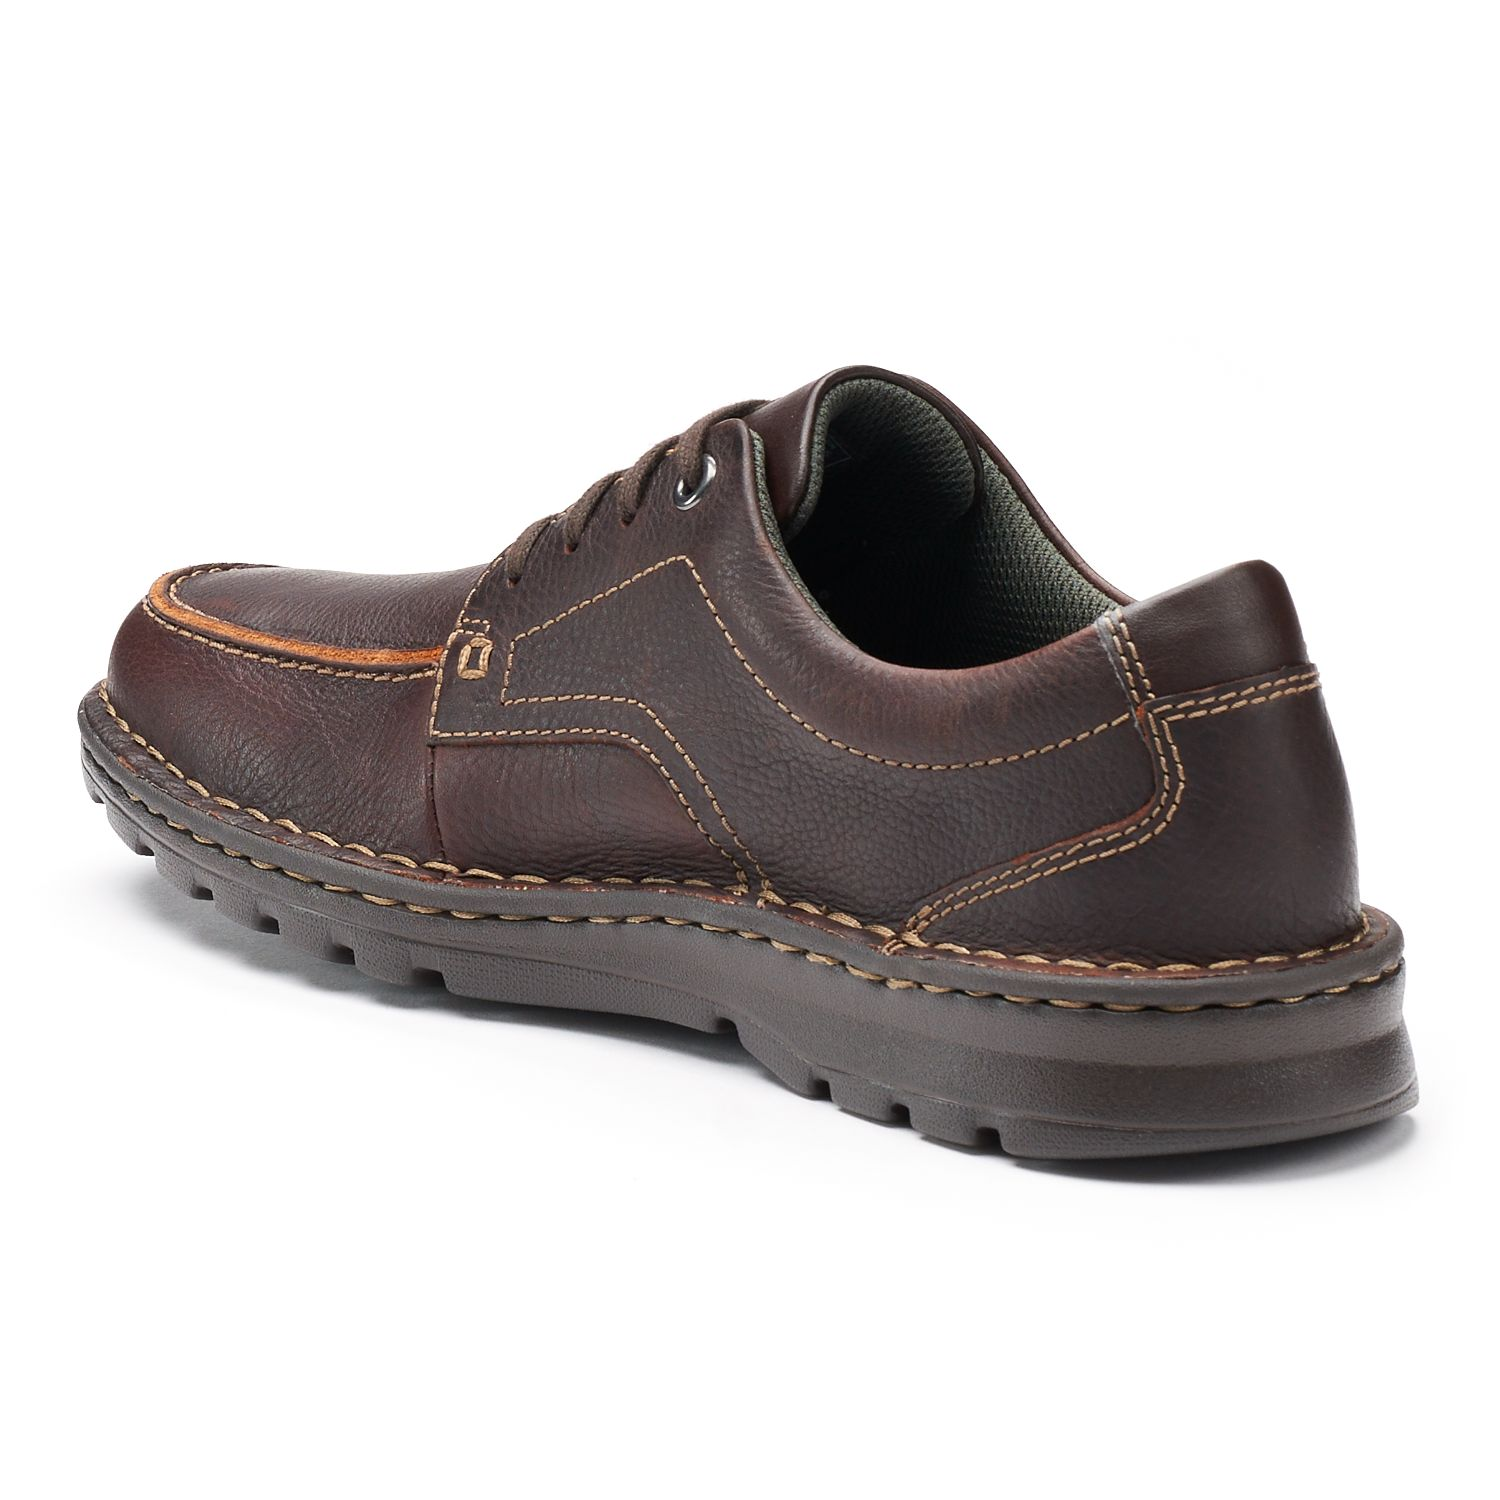 b630671b2c4b8 Mens Clarks Shoes | Kohl's